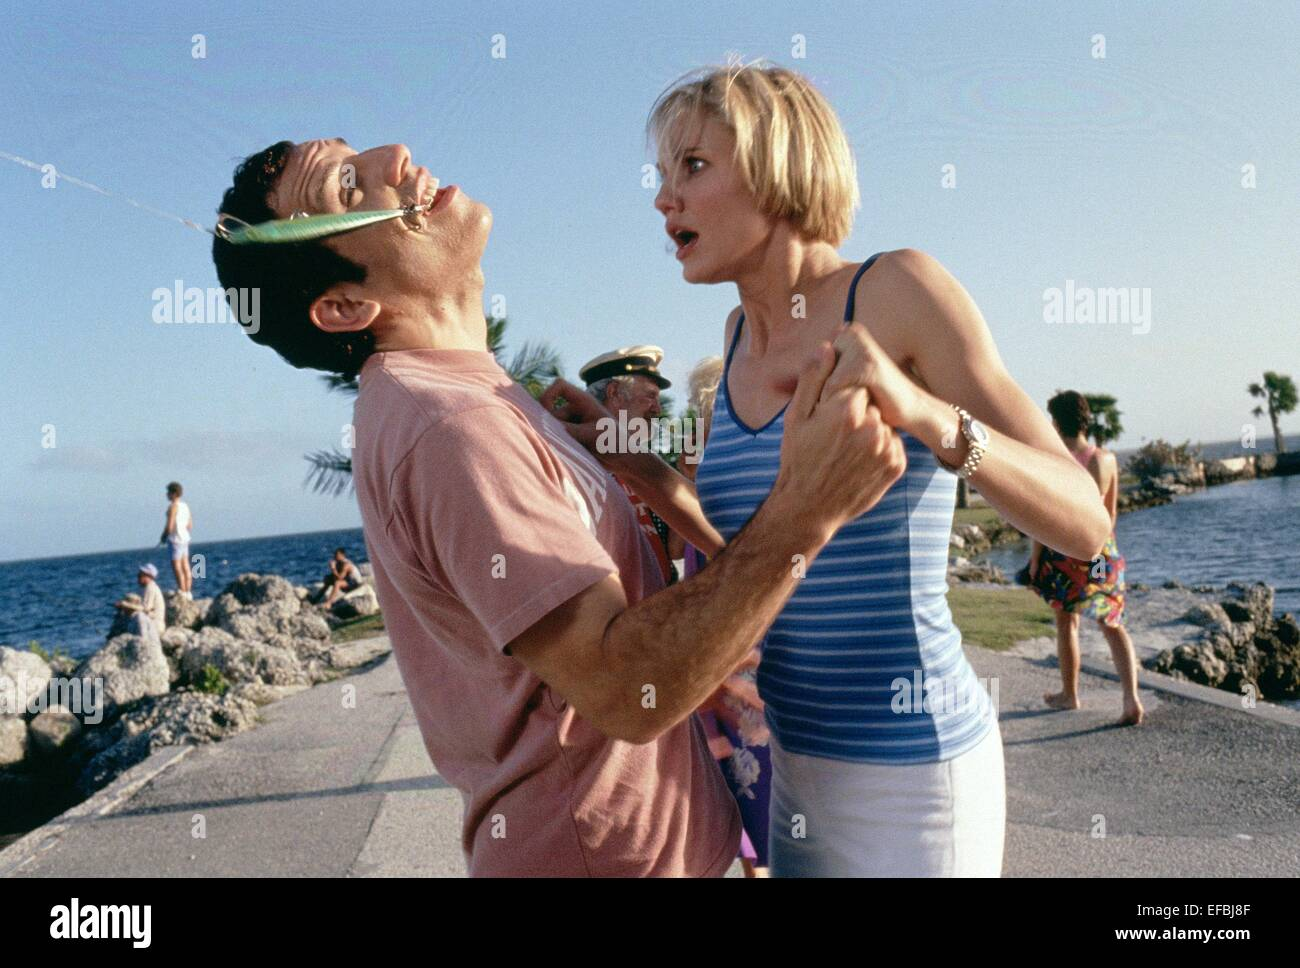 BEN STILLER, CAMERON DIAZ, THERE'S SOMETHING ABOUT MARY, 1998 - Stock Image